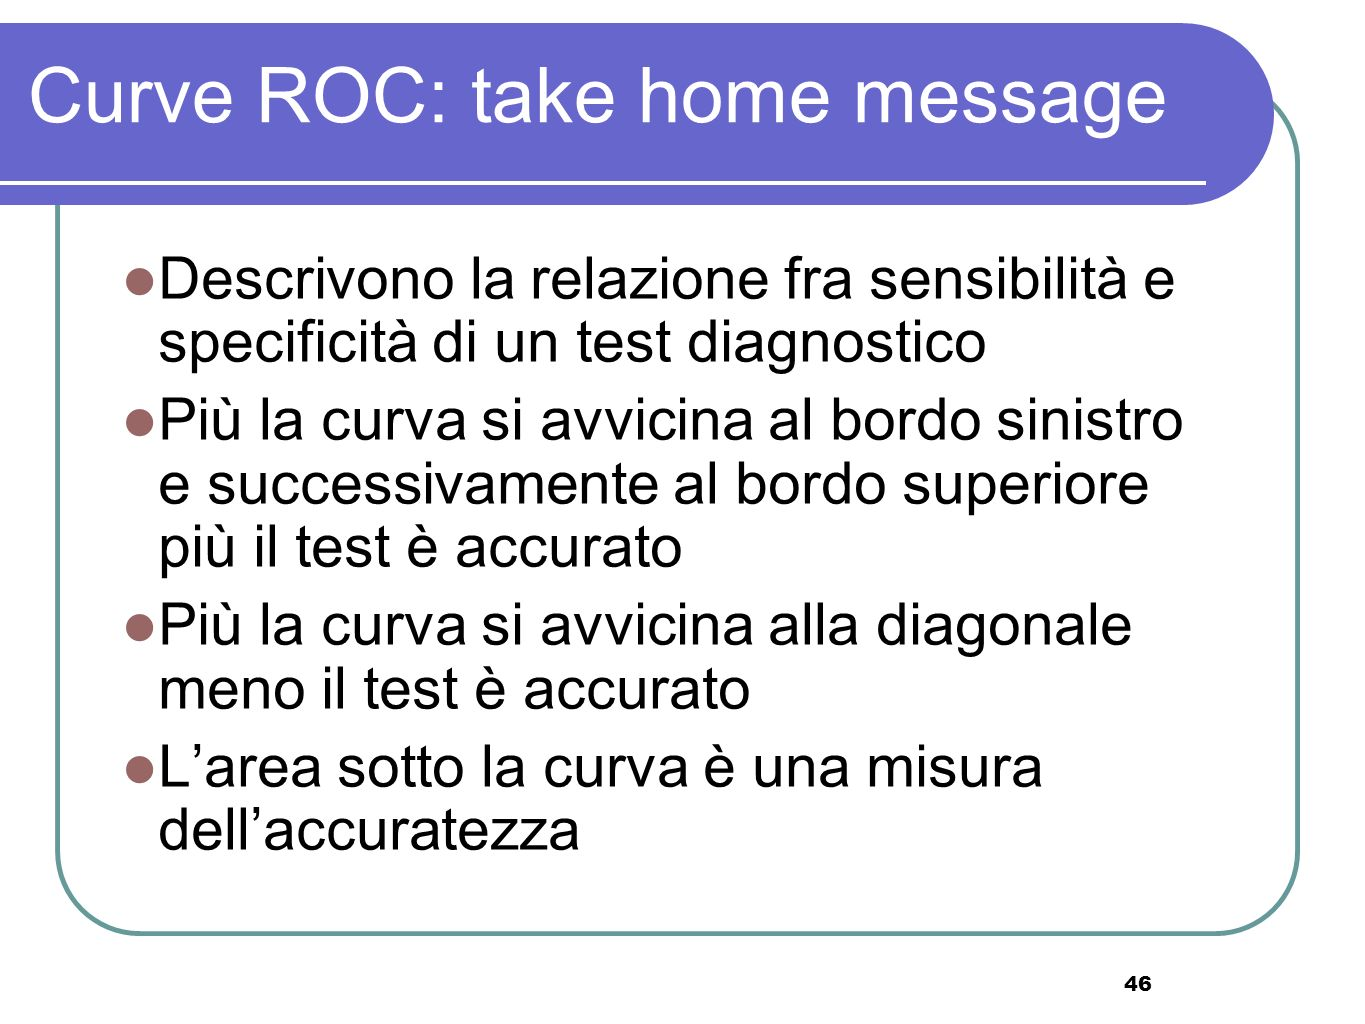 Curve ROC: take home message